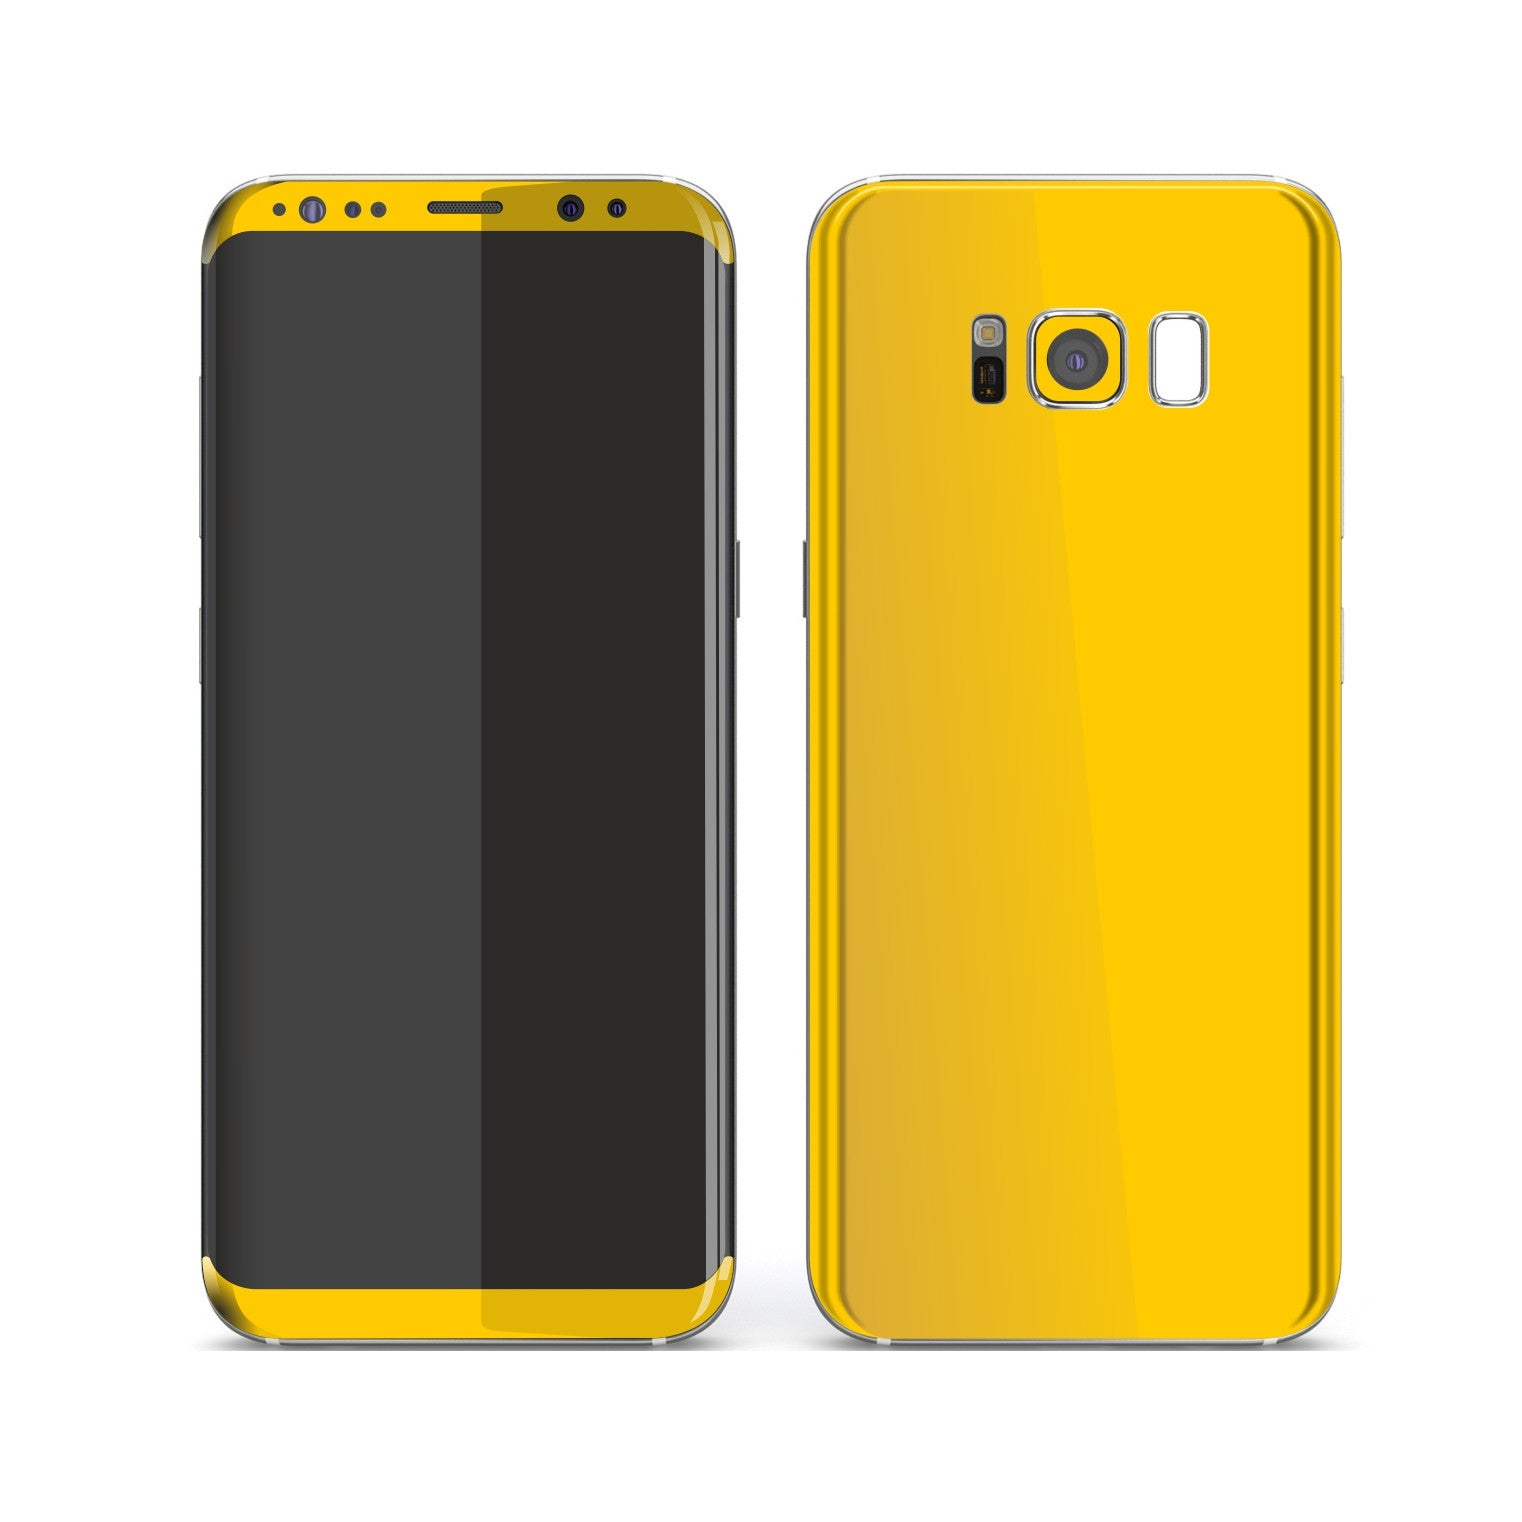 Samsung Galaxy S8+ Golden Yellow Glossy Gloss Finish Skin, Decal, Wrap, Protector, Cover by EasySkinz | EasySkinz.com